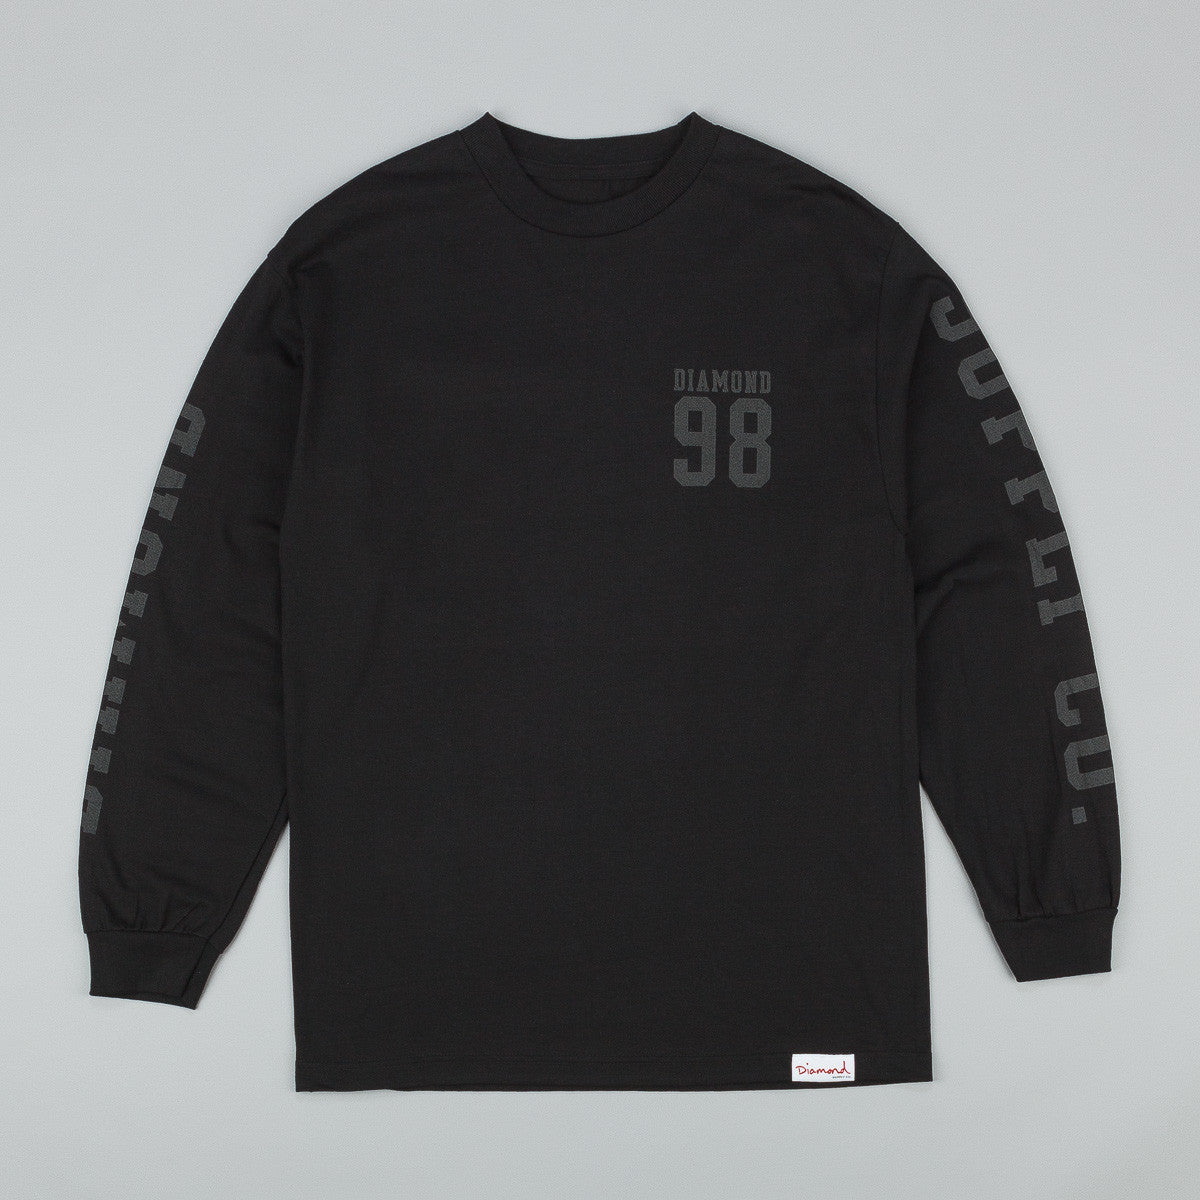 Diamond Nine Eight Long Sleeve T-Shirt - Black